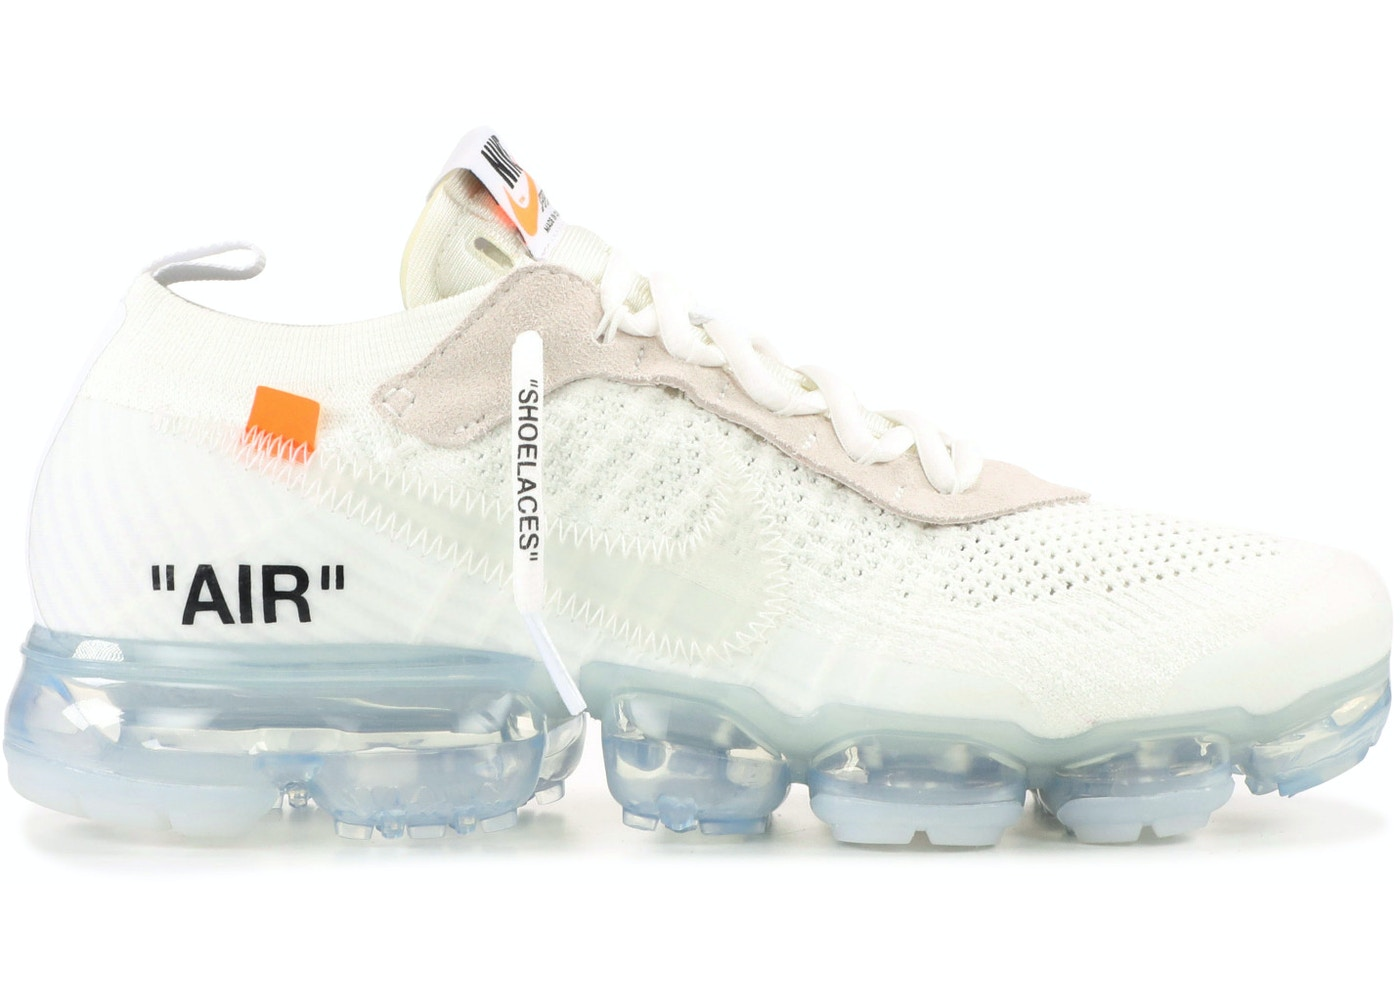 05adce6e8703a Air Vapormax Off White 2018 - AA3831-100